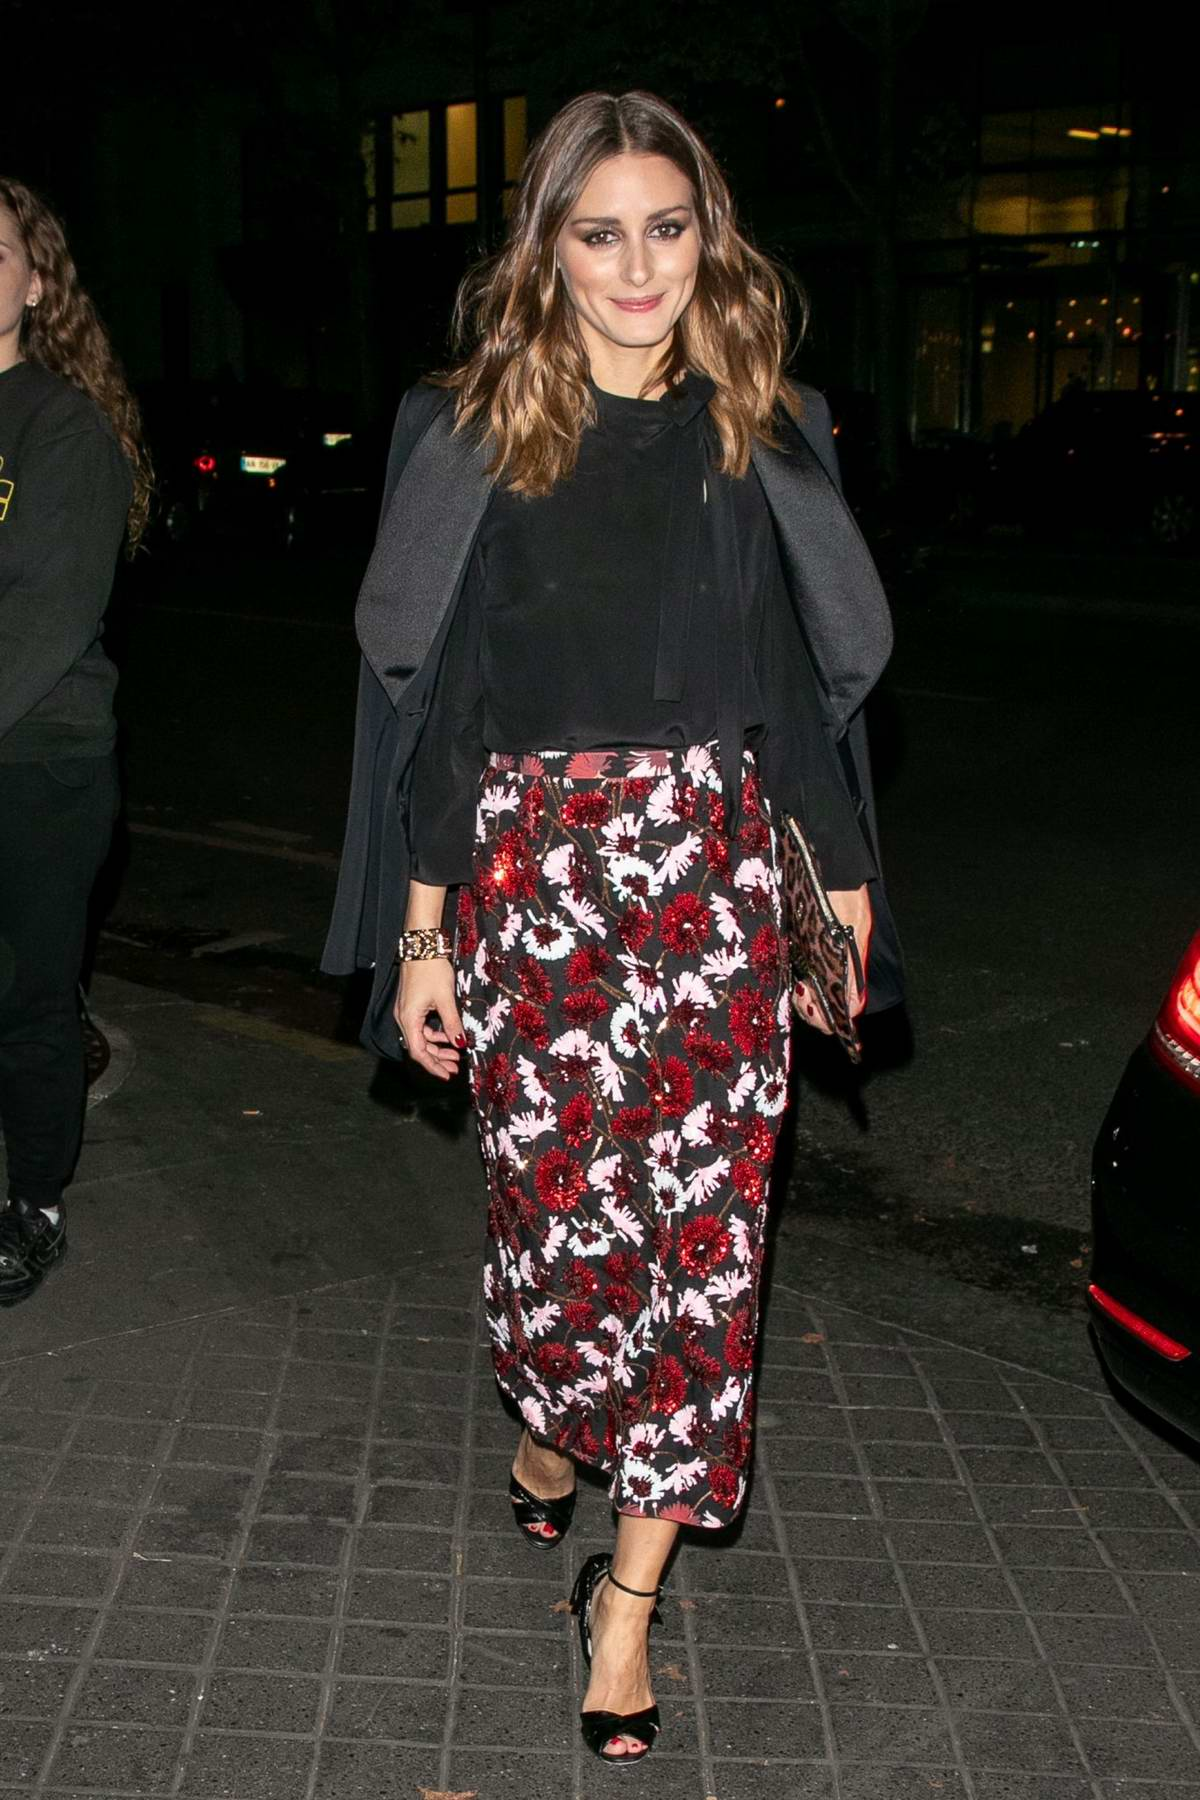 Olivia Palermo attends the Youtube Cocktail Party during Paris Fashion Week in Paris, France